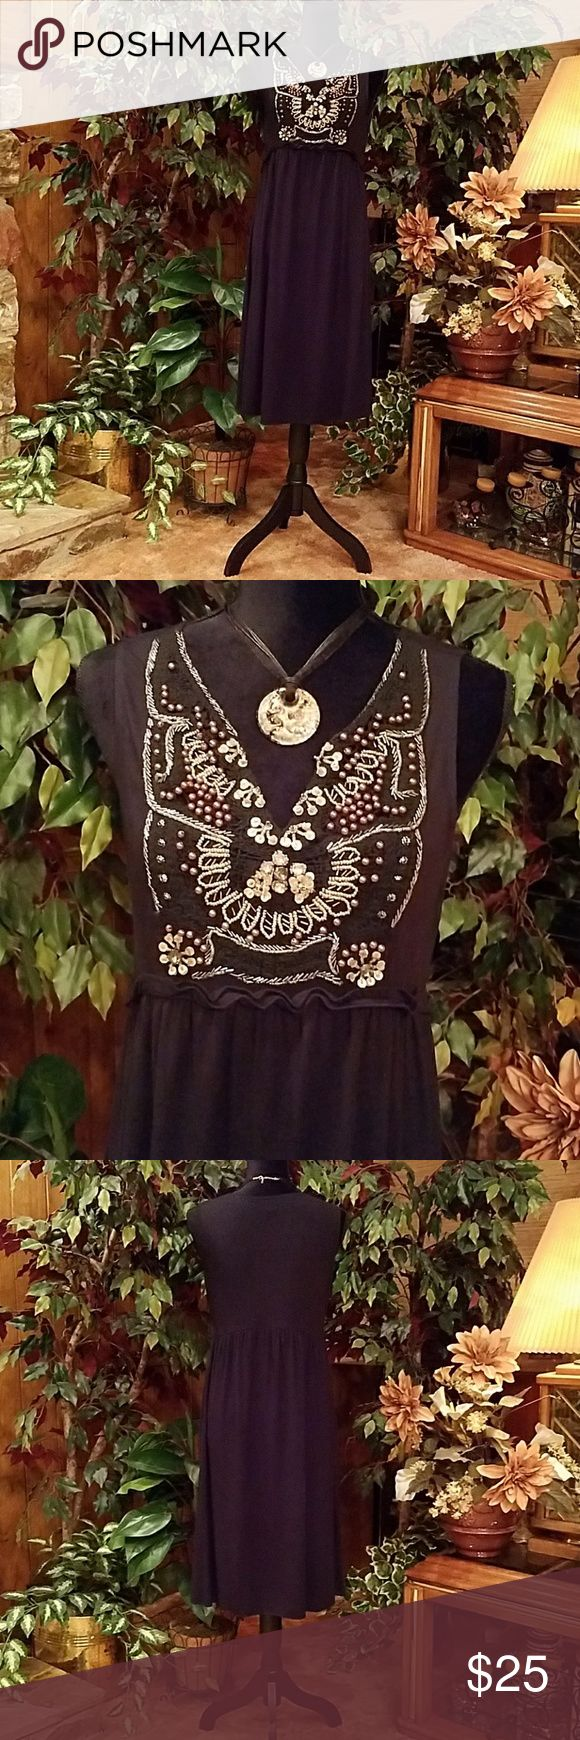 "Dress These  empire waist dresses  are quite comfy and easy fit any casual event. Professionally shortened to 40"" shoulder to hemline, armpit to armpit 18"", bust line 19"". Enlarge photo to reveal ""V"" neck adorned with sequins, various sizes and colors of beads . Boston Proper Dresses Midi"